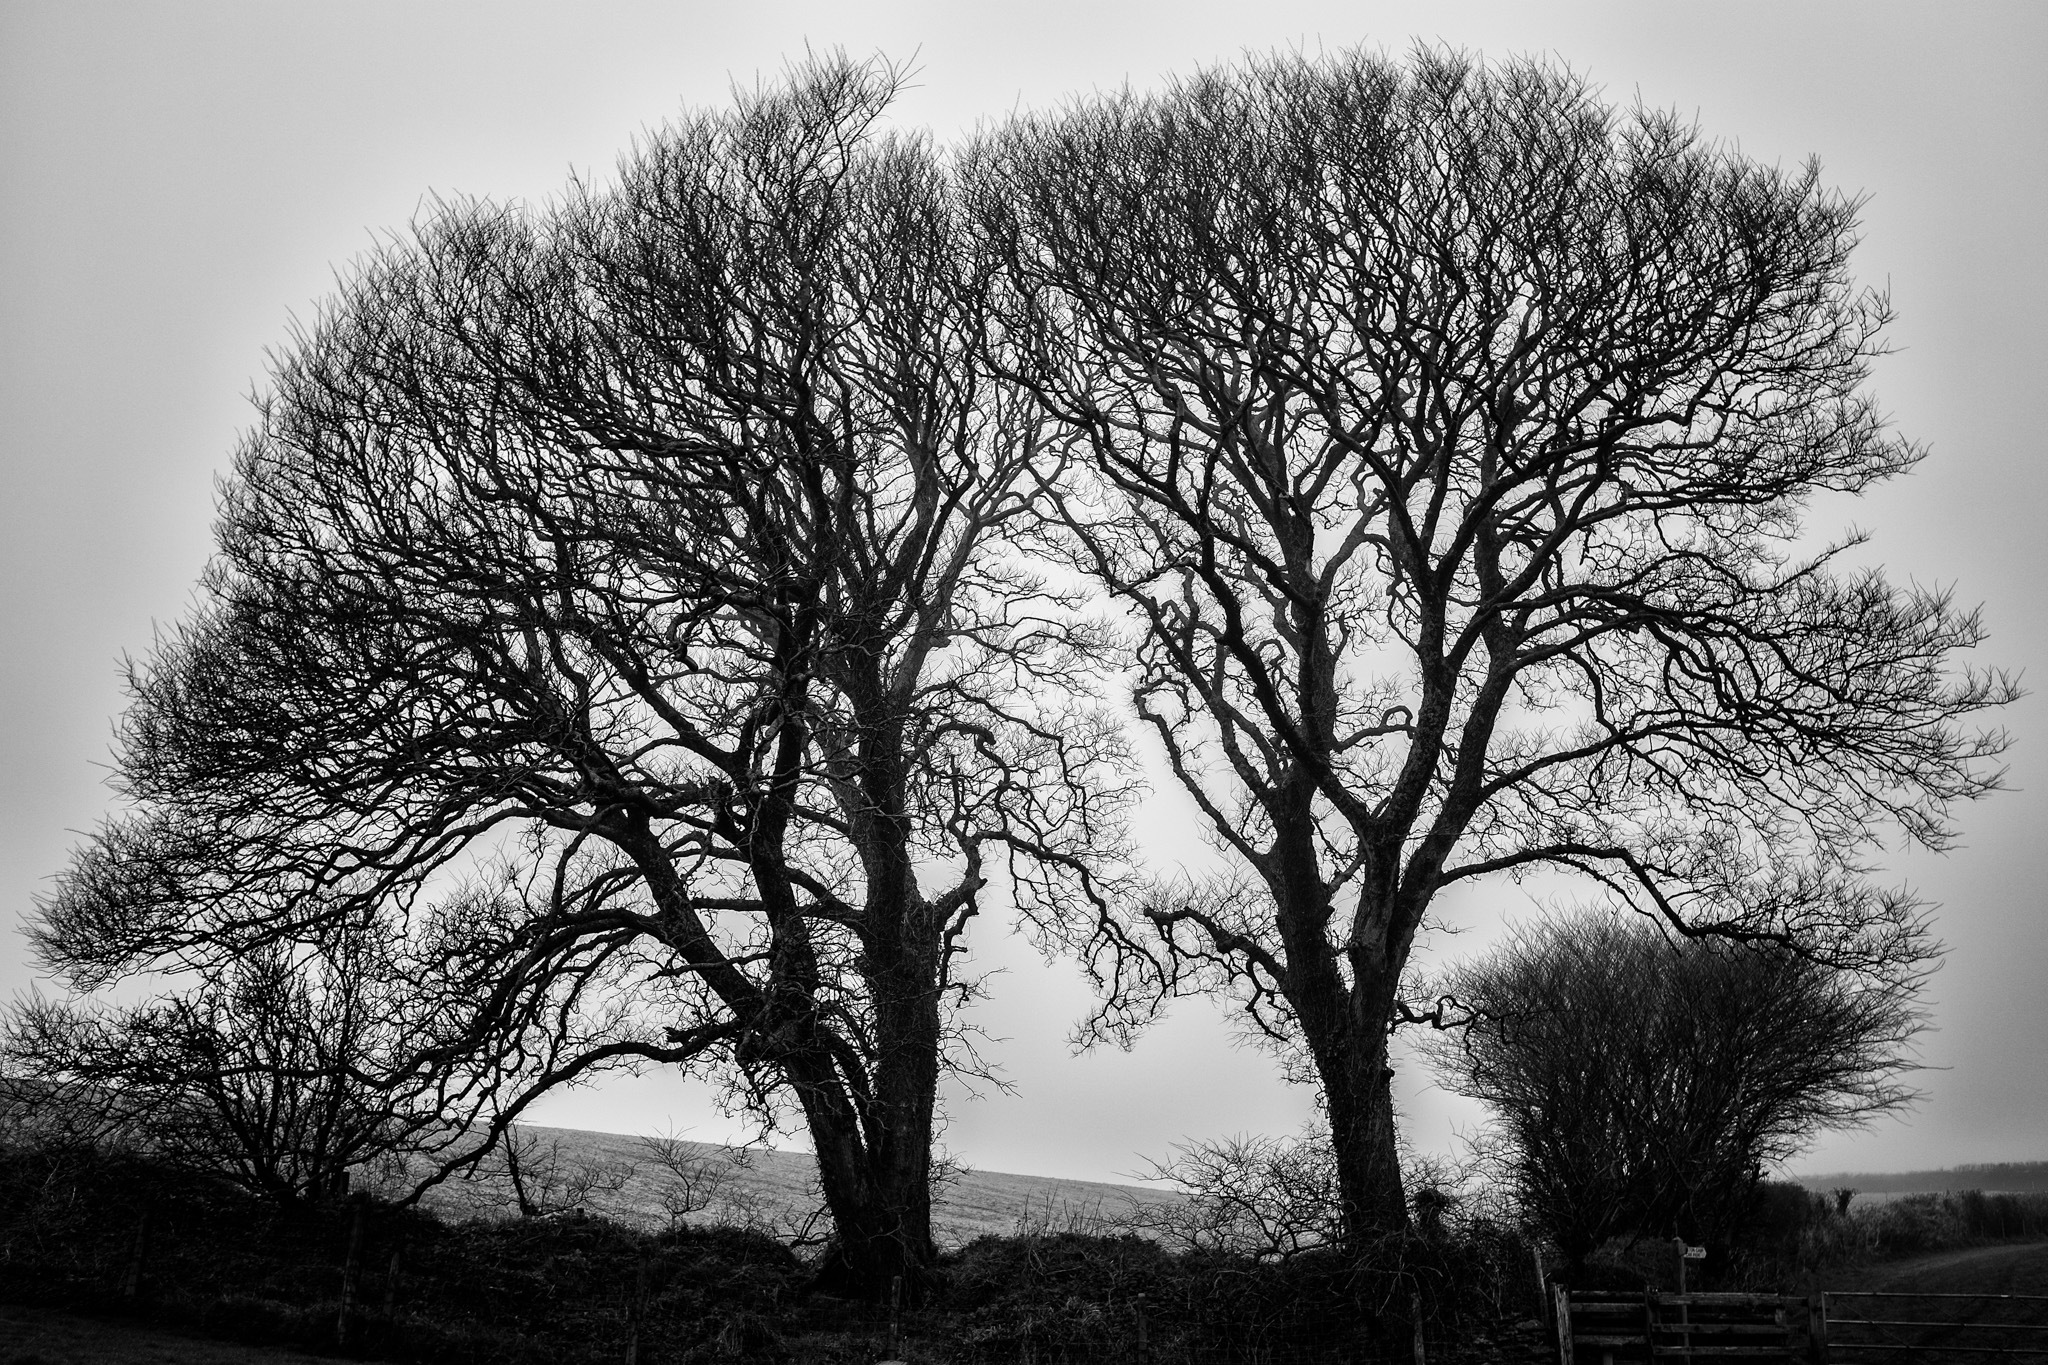 Trees in Black and White by Pete Cripps